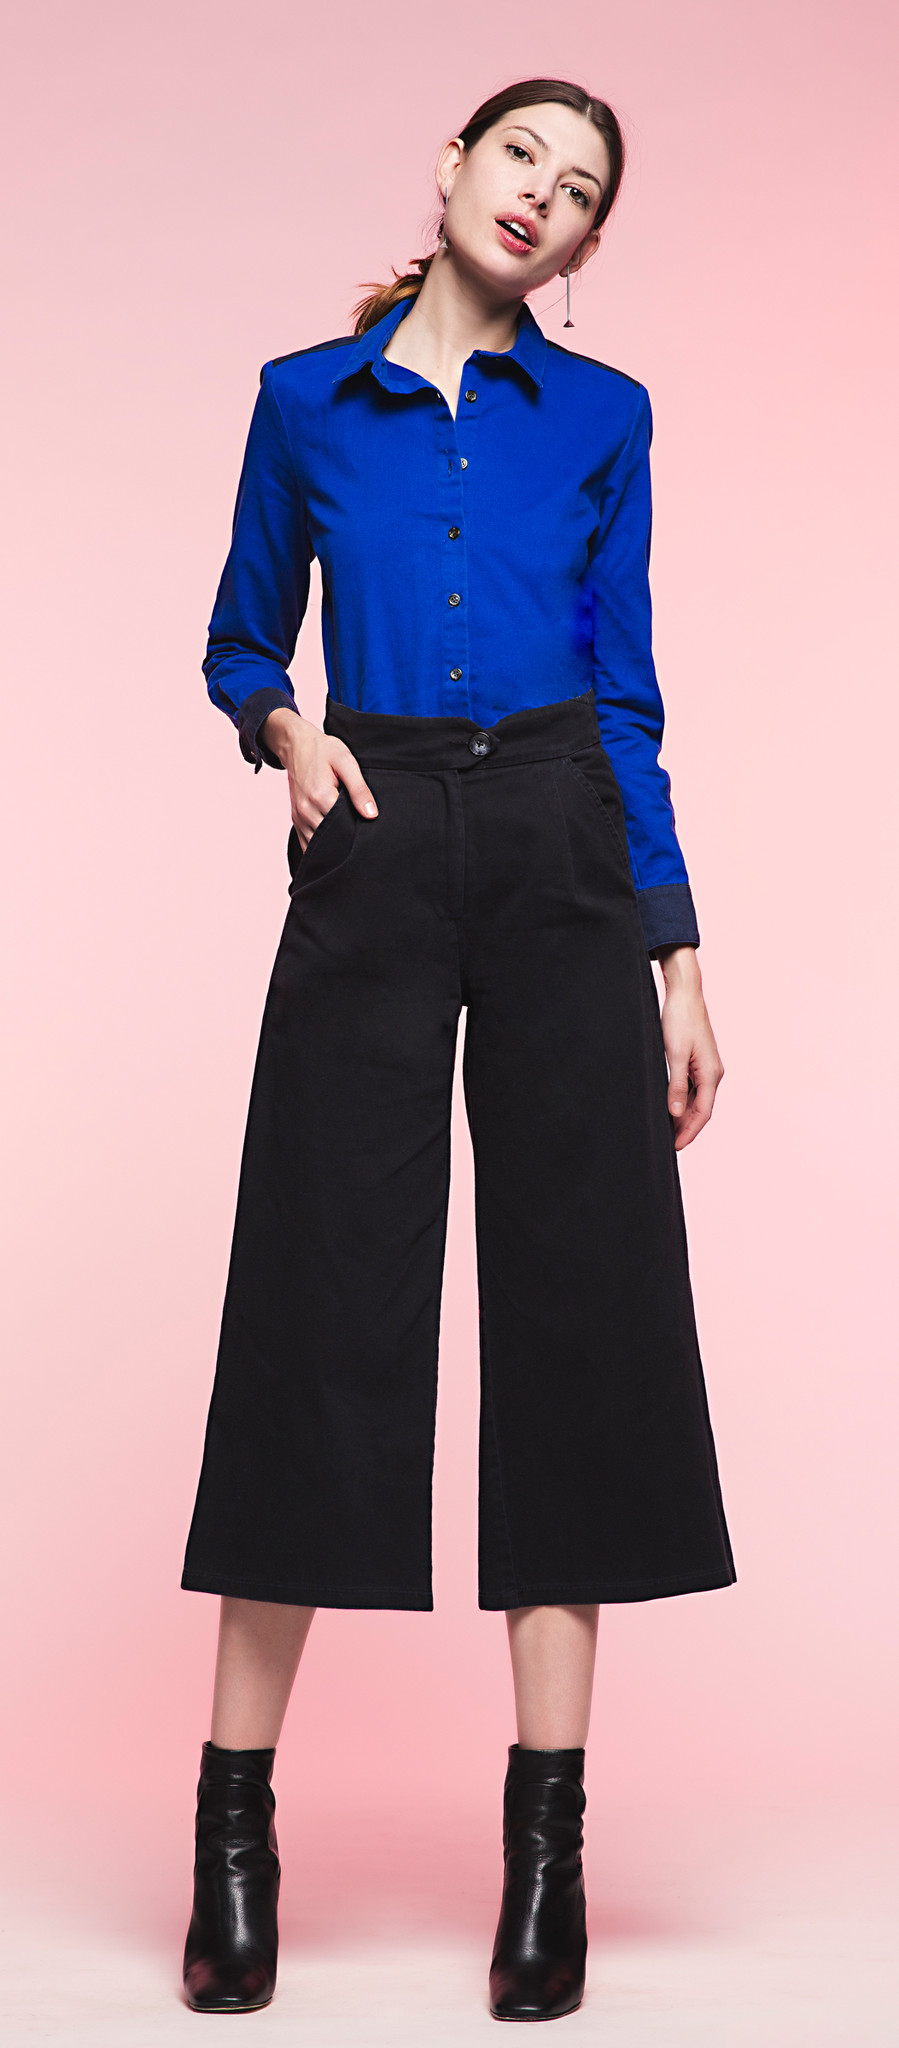 Loup denim culotte made in NYC